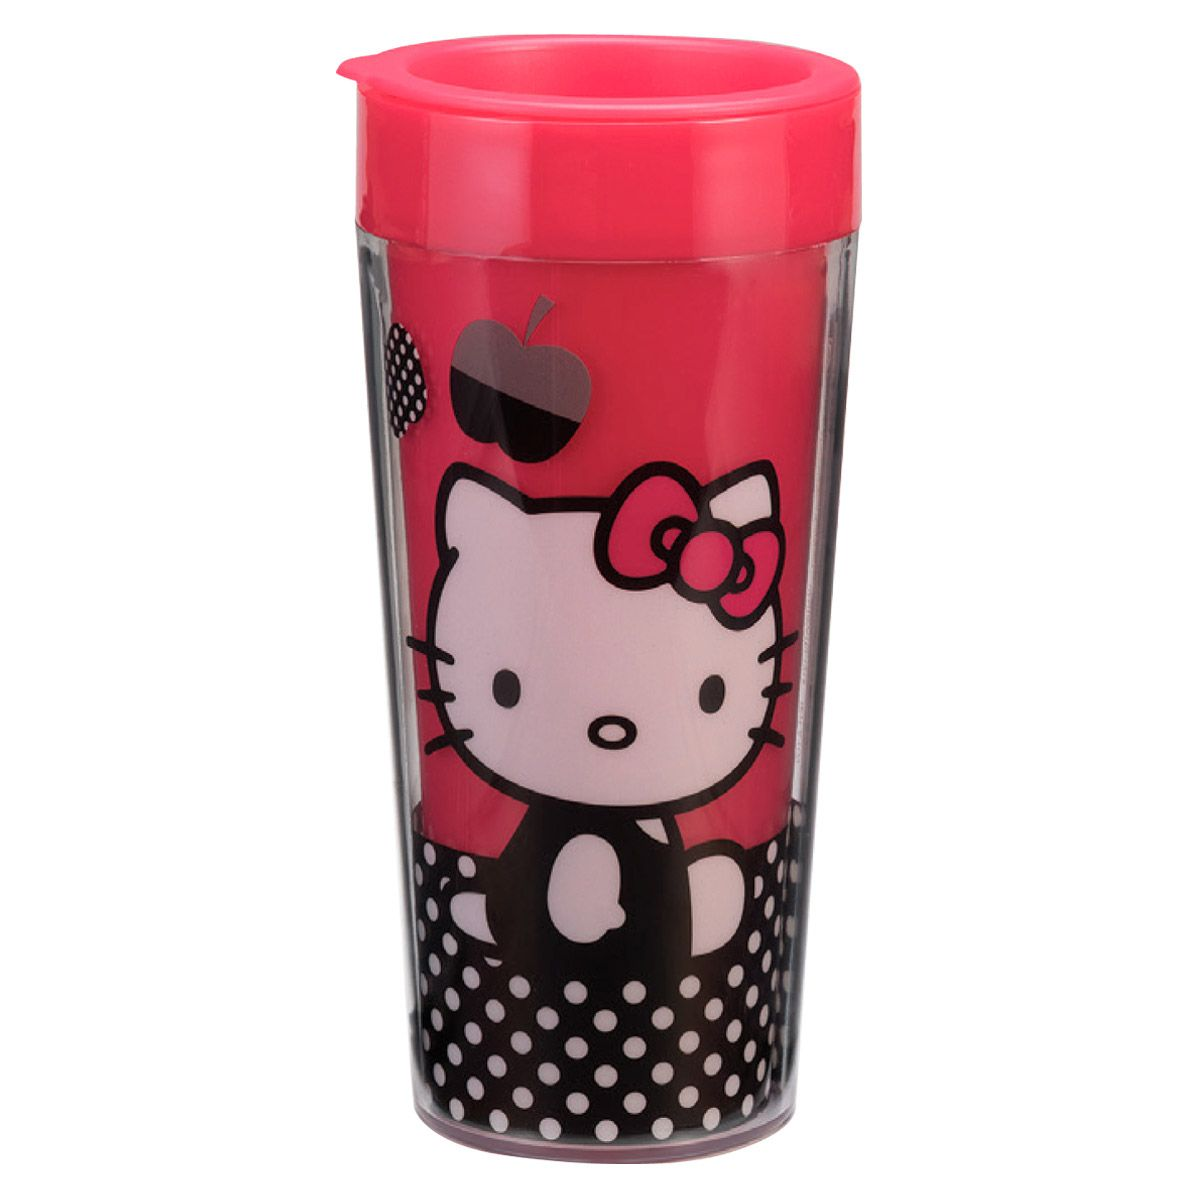 Hello Kitty Plastic Travel Mug for carrying out hot and